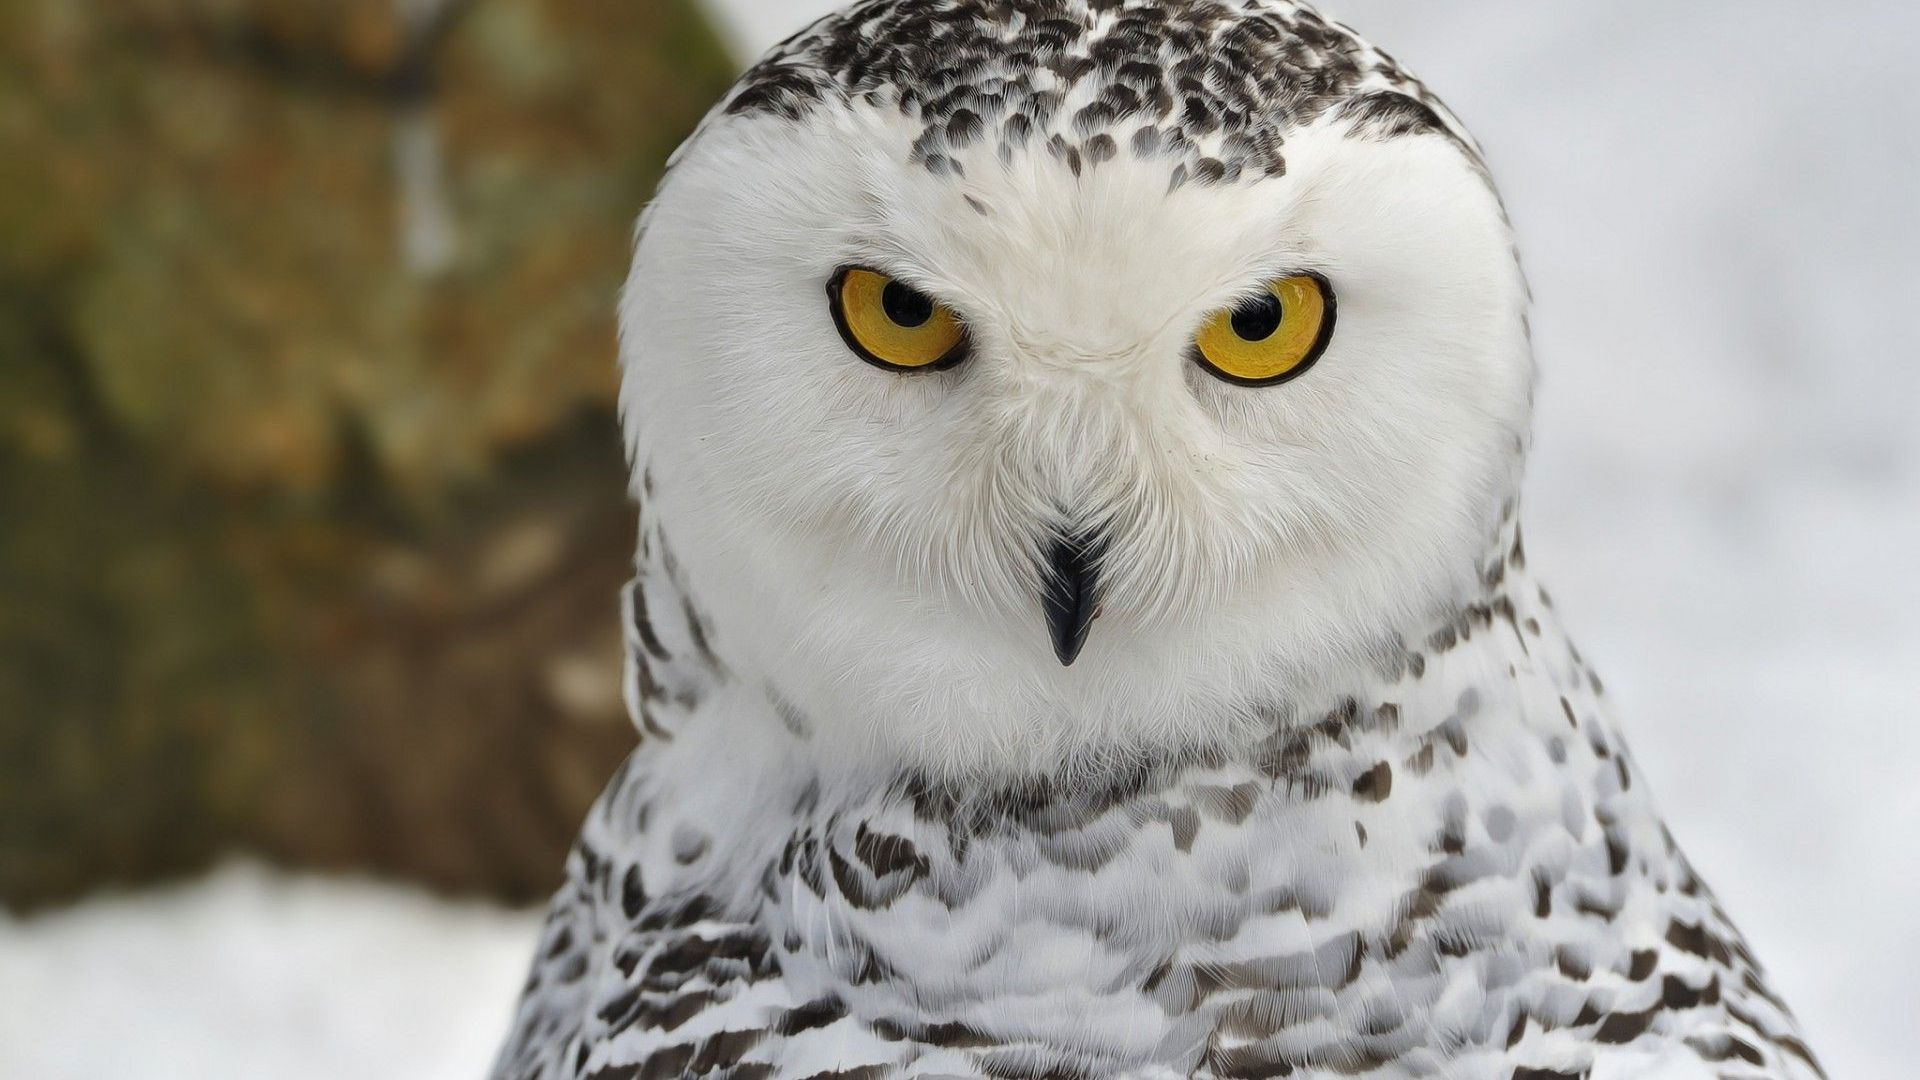 Cute Downloadable Wallpapers Owl Wallpapers Amp Pictures Hd Wallpapers